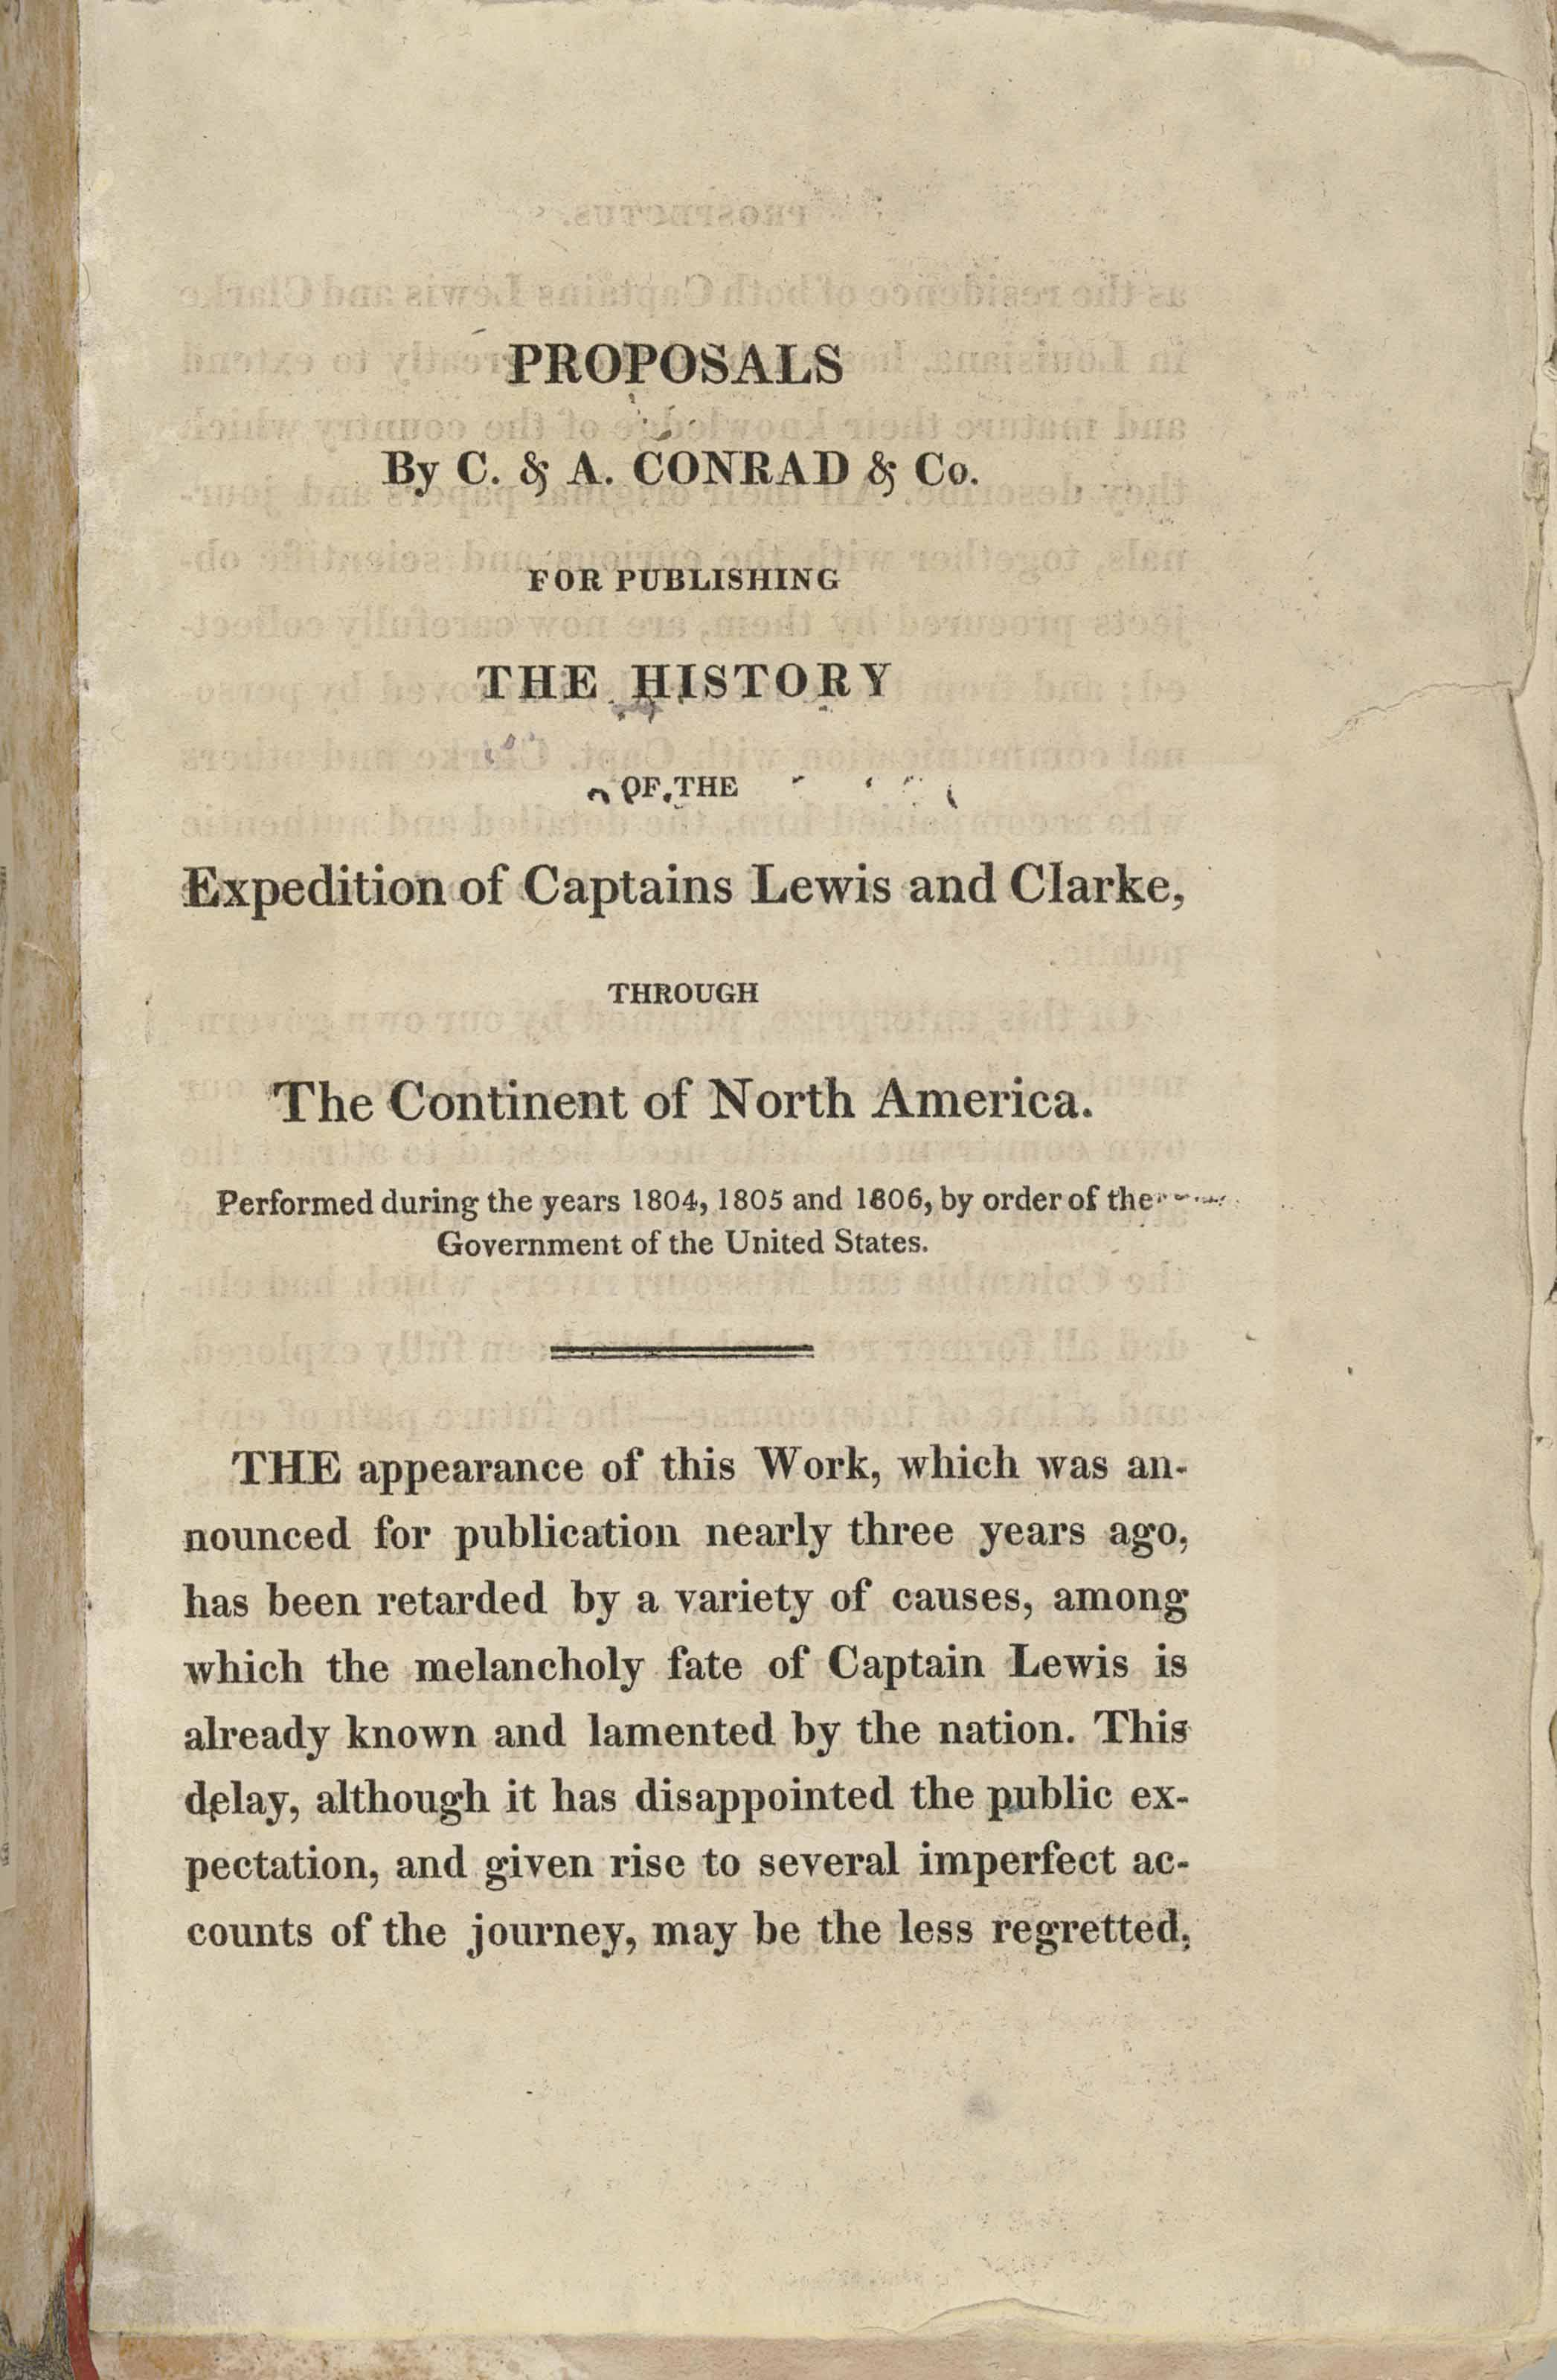 [LEWIS AND CLARK EXPEDITION].